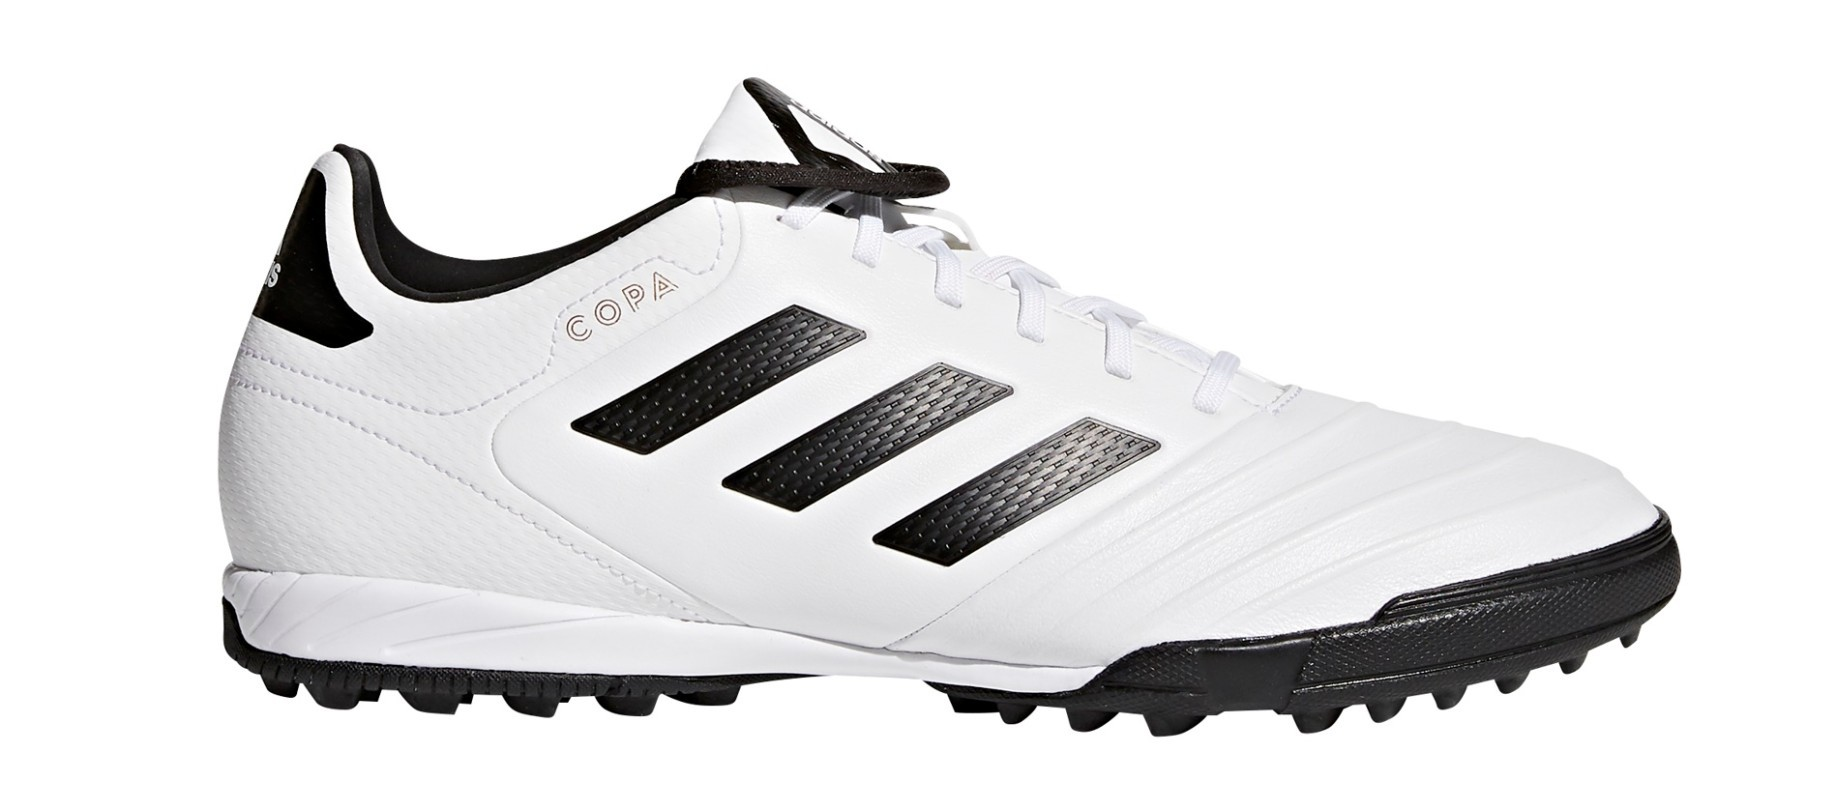 huge selection of 58e2e 26827 Shoes Soccer Adidas Copa Tango 18.3 TF Skystalker Pack colore White - Adidas  - SportIT.com